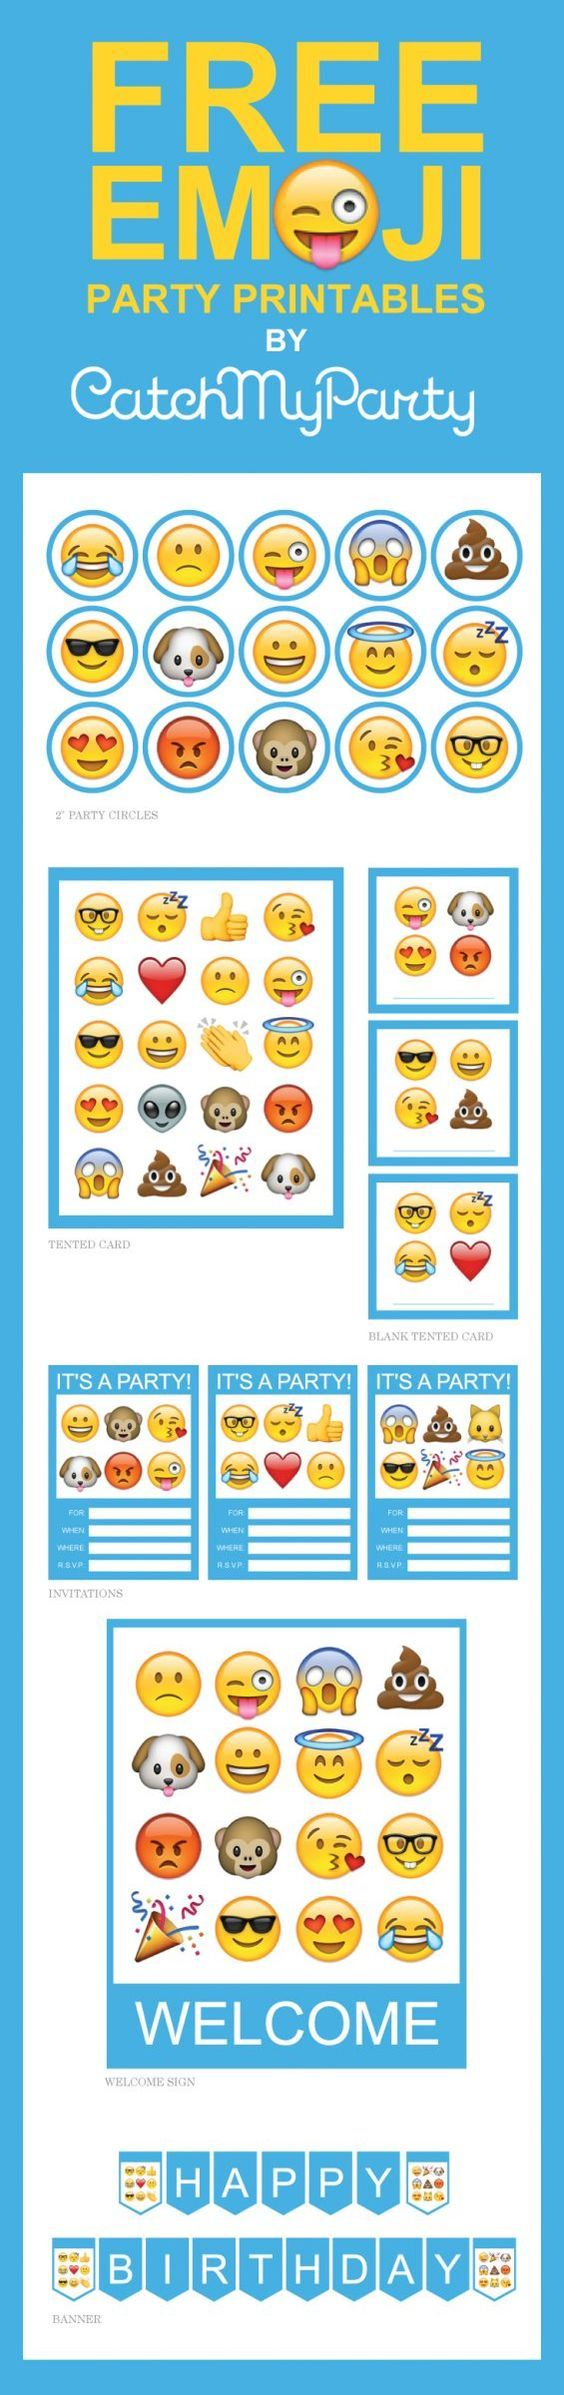 Free Emoji Party Printables Including Invitations Cupcake Toppers A Happy Birthday Banner Welcome Sign And Tented Cards Download For